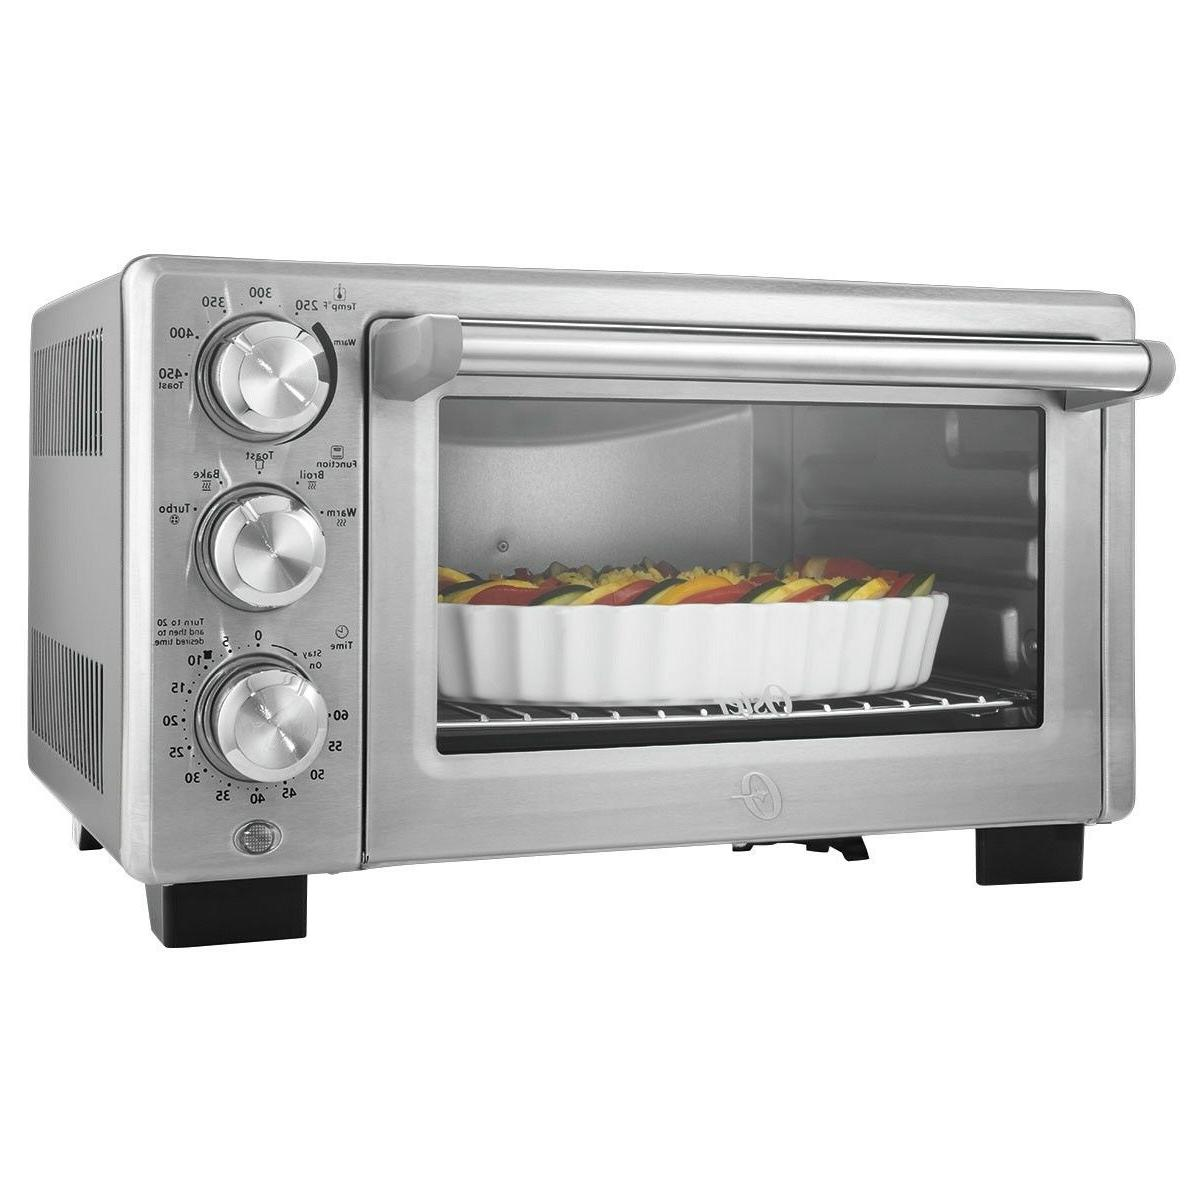 Oster Designed For Life 6 Slice Convection Toaster Oven